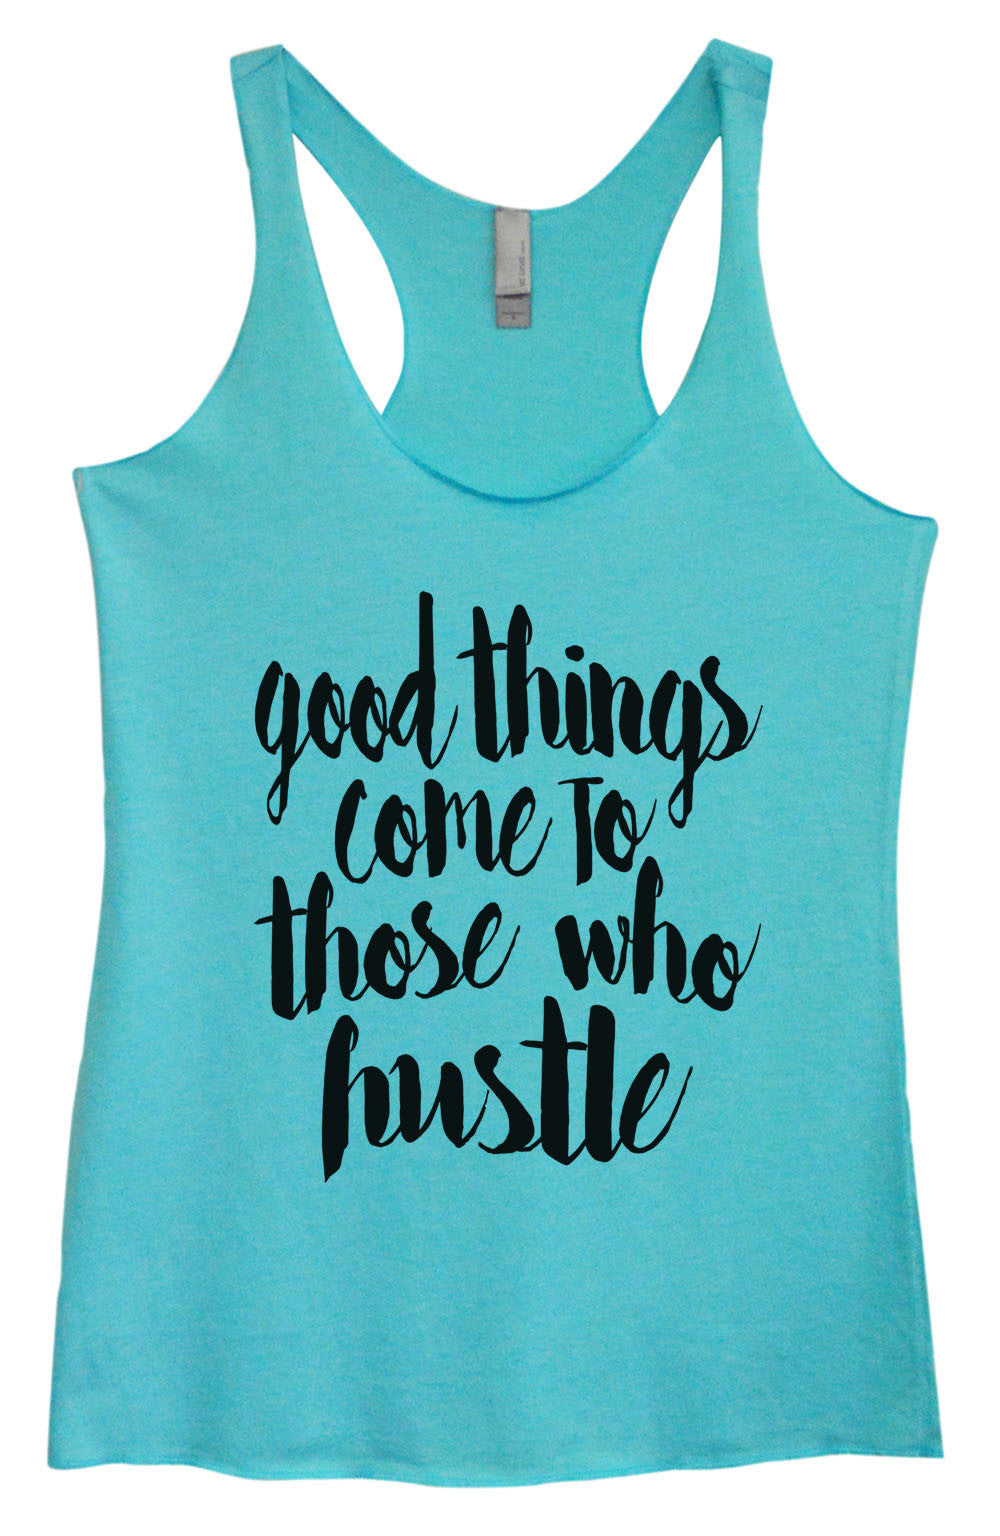 Womens Fashion Triblend Tank Top - Good Things Come To Those Who Hustle - Tri-1478 - Funny Shirts Tank Tops Burnouts and Triblends  - 2